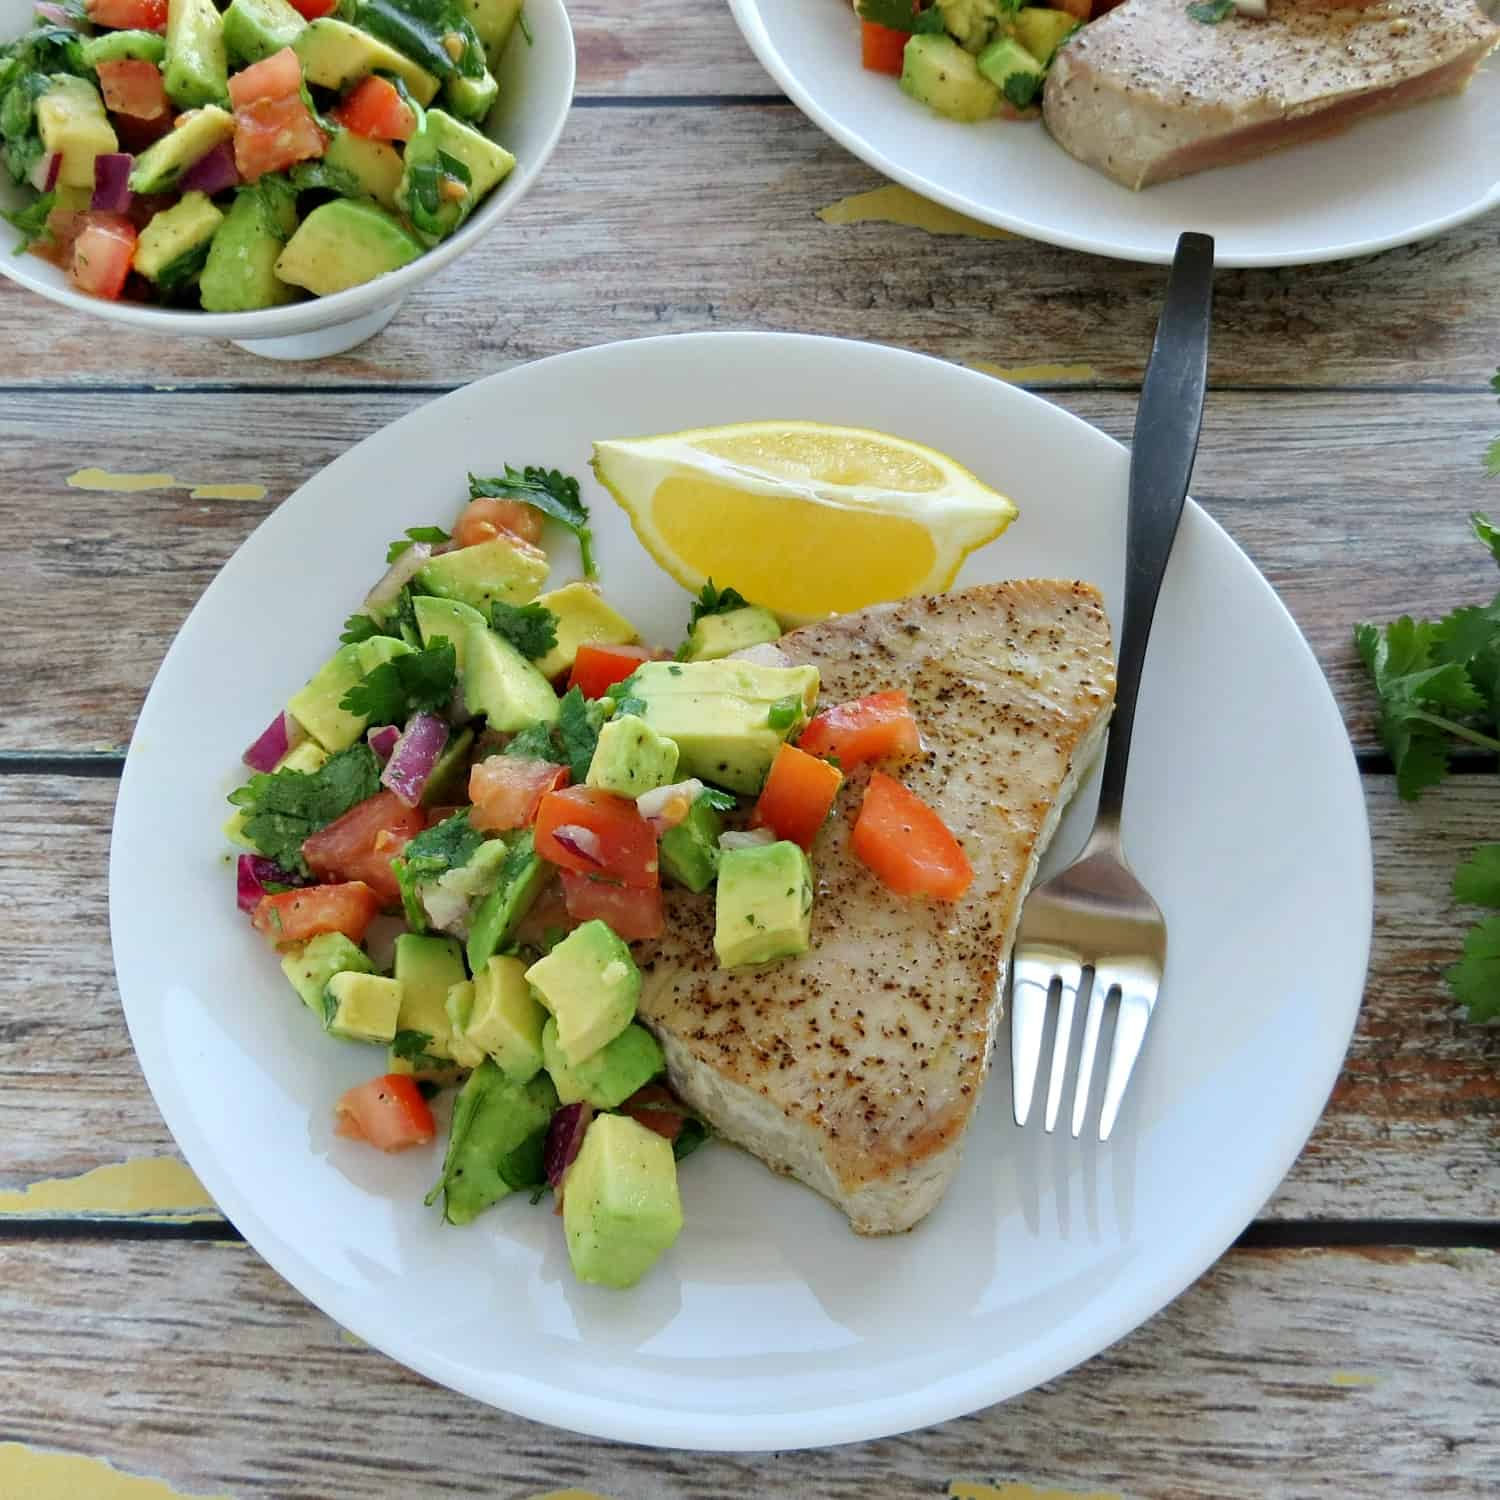 Pan Seared Ahi Tuna Steaks with Avocado Salsa - Overhead